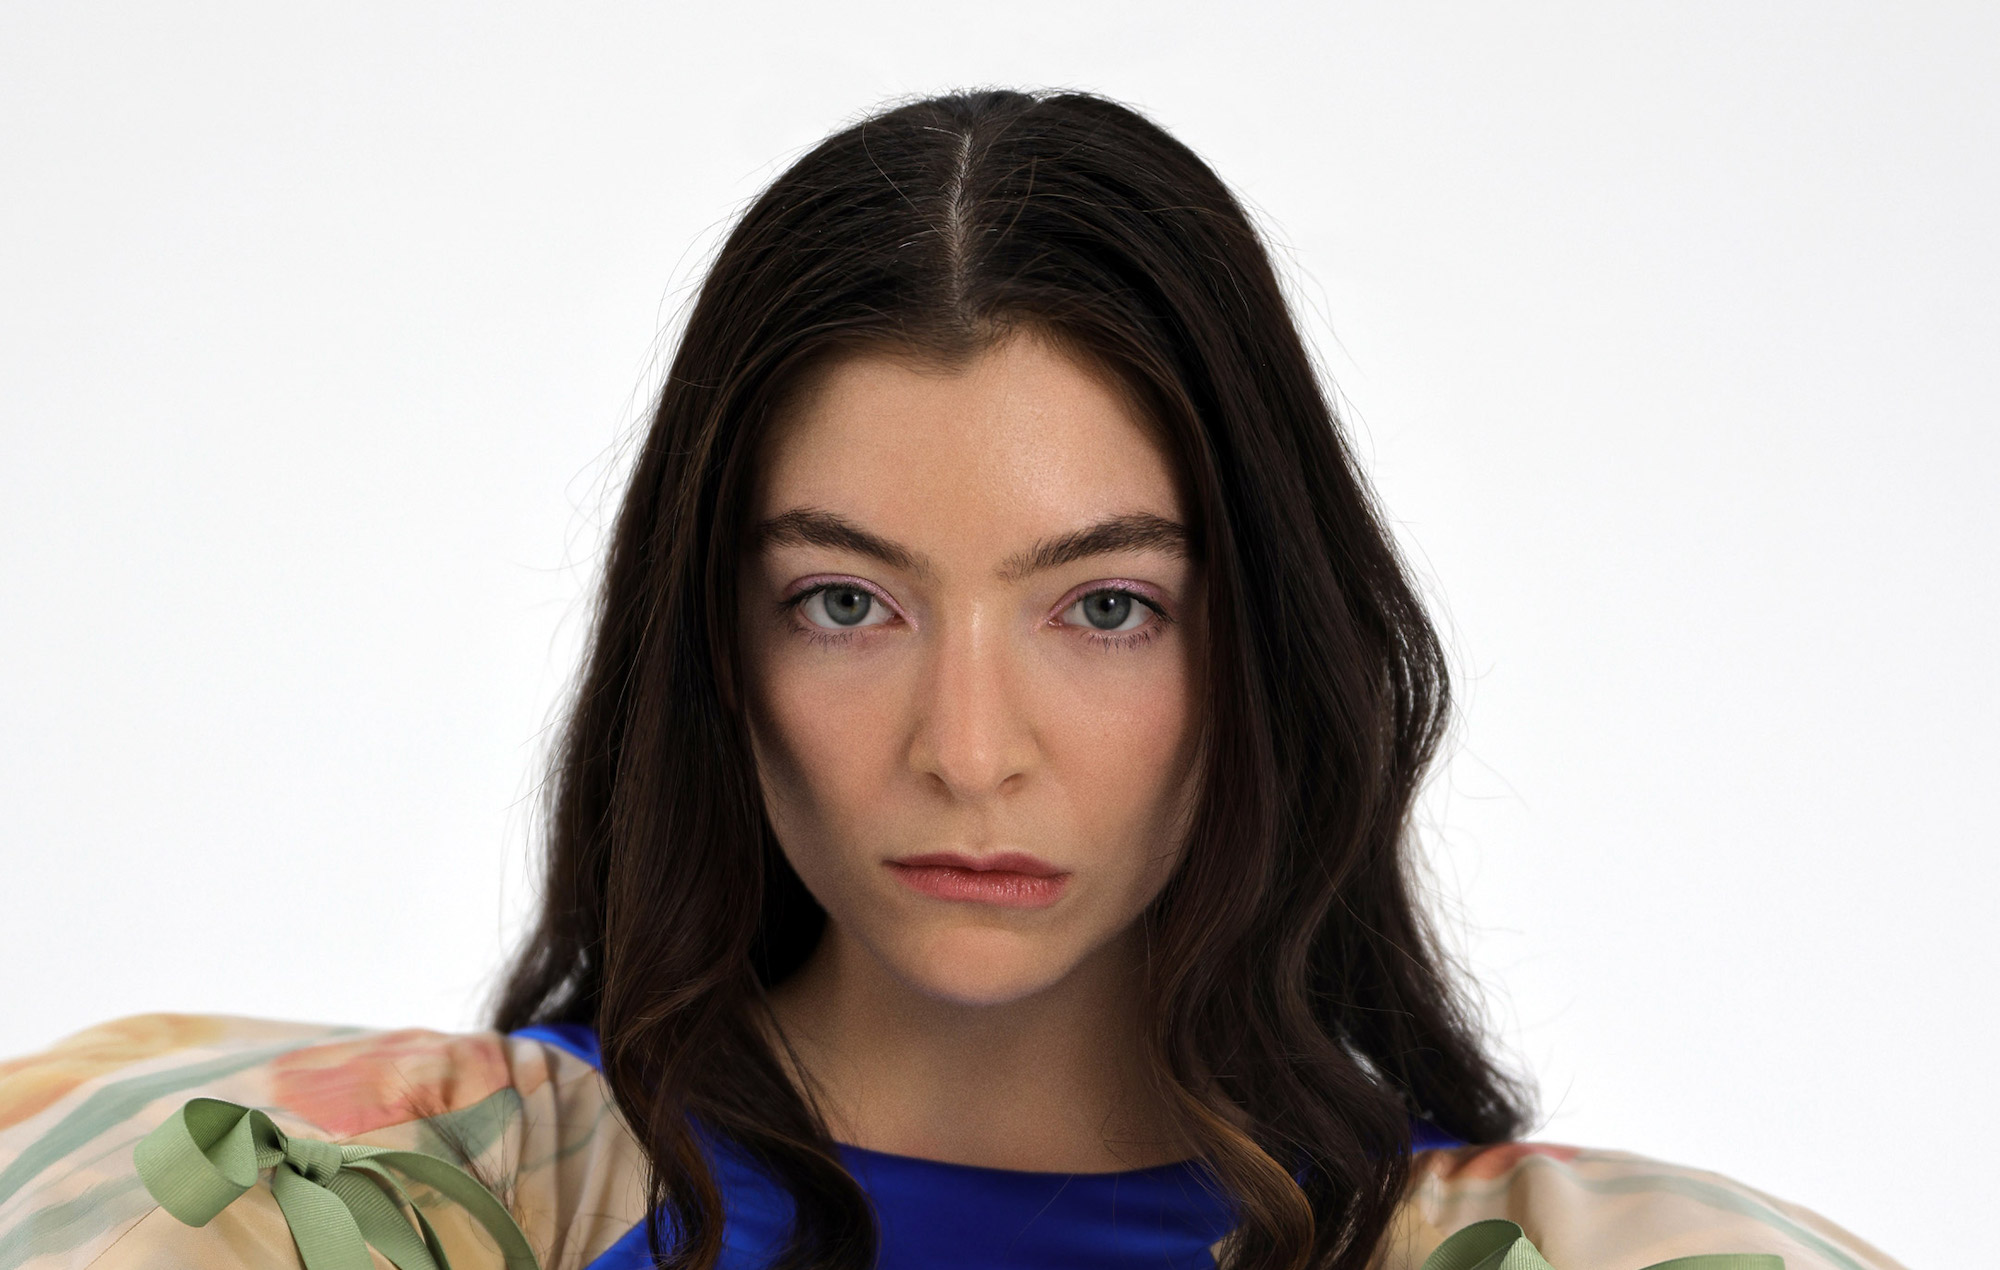 Lorde discusses not reading reviews of her music: